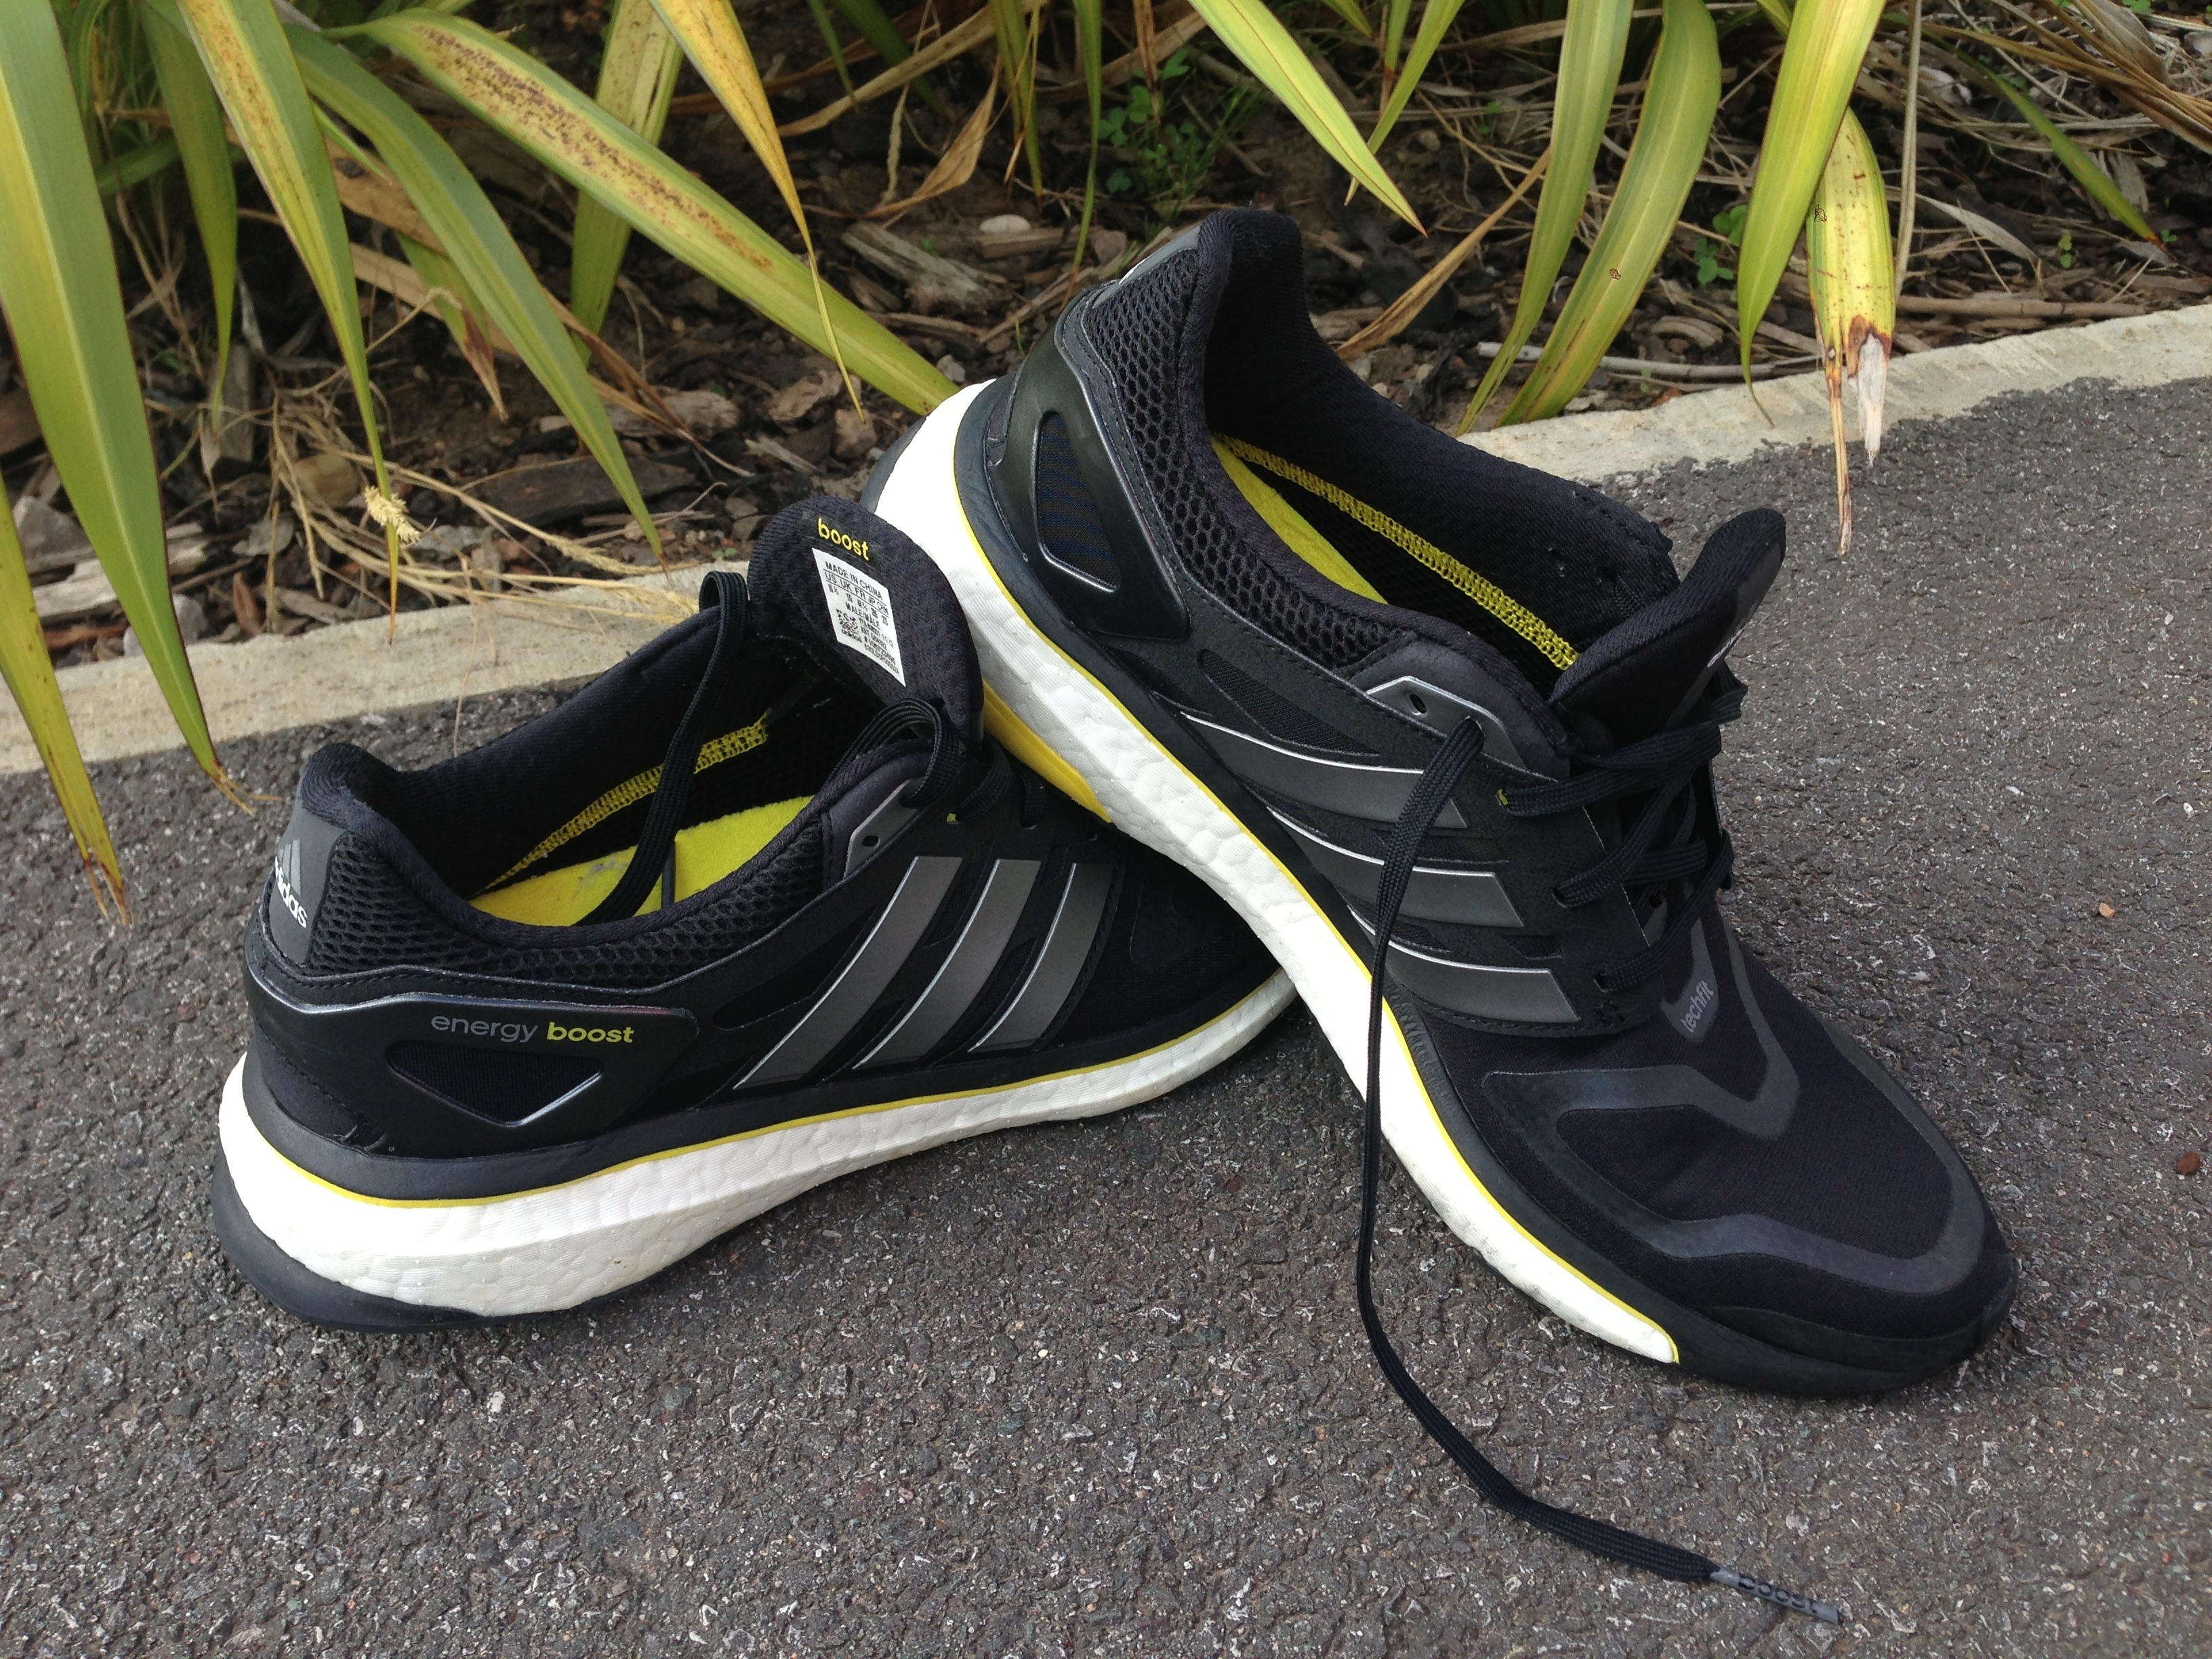 Review Shoe Running Boost Sportlocker Energy Playtest Adidas qxU7wxEWCp